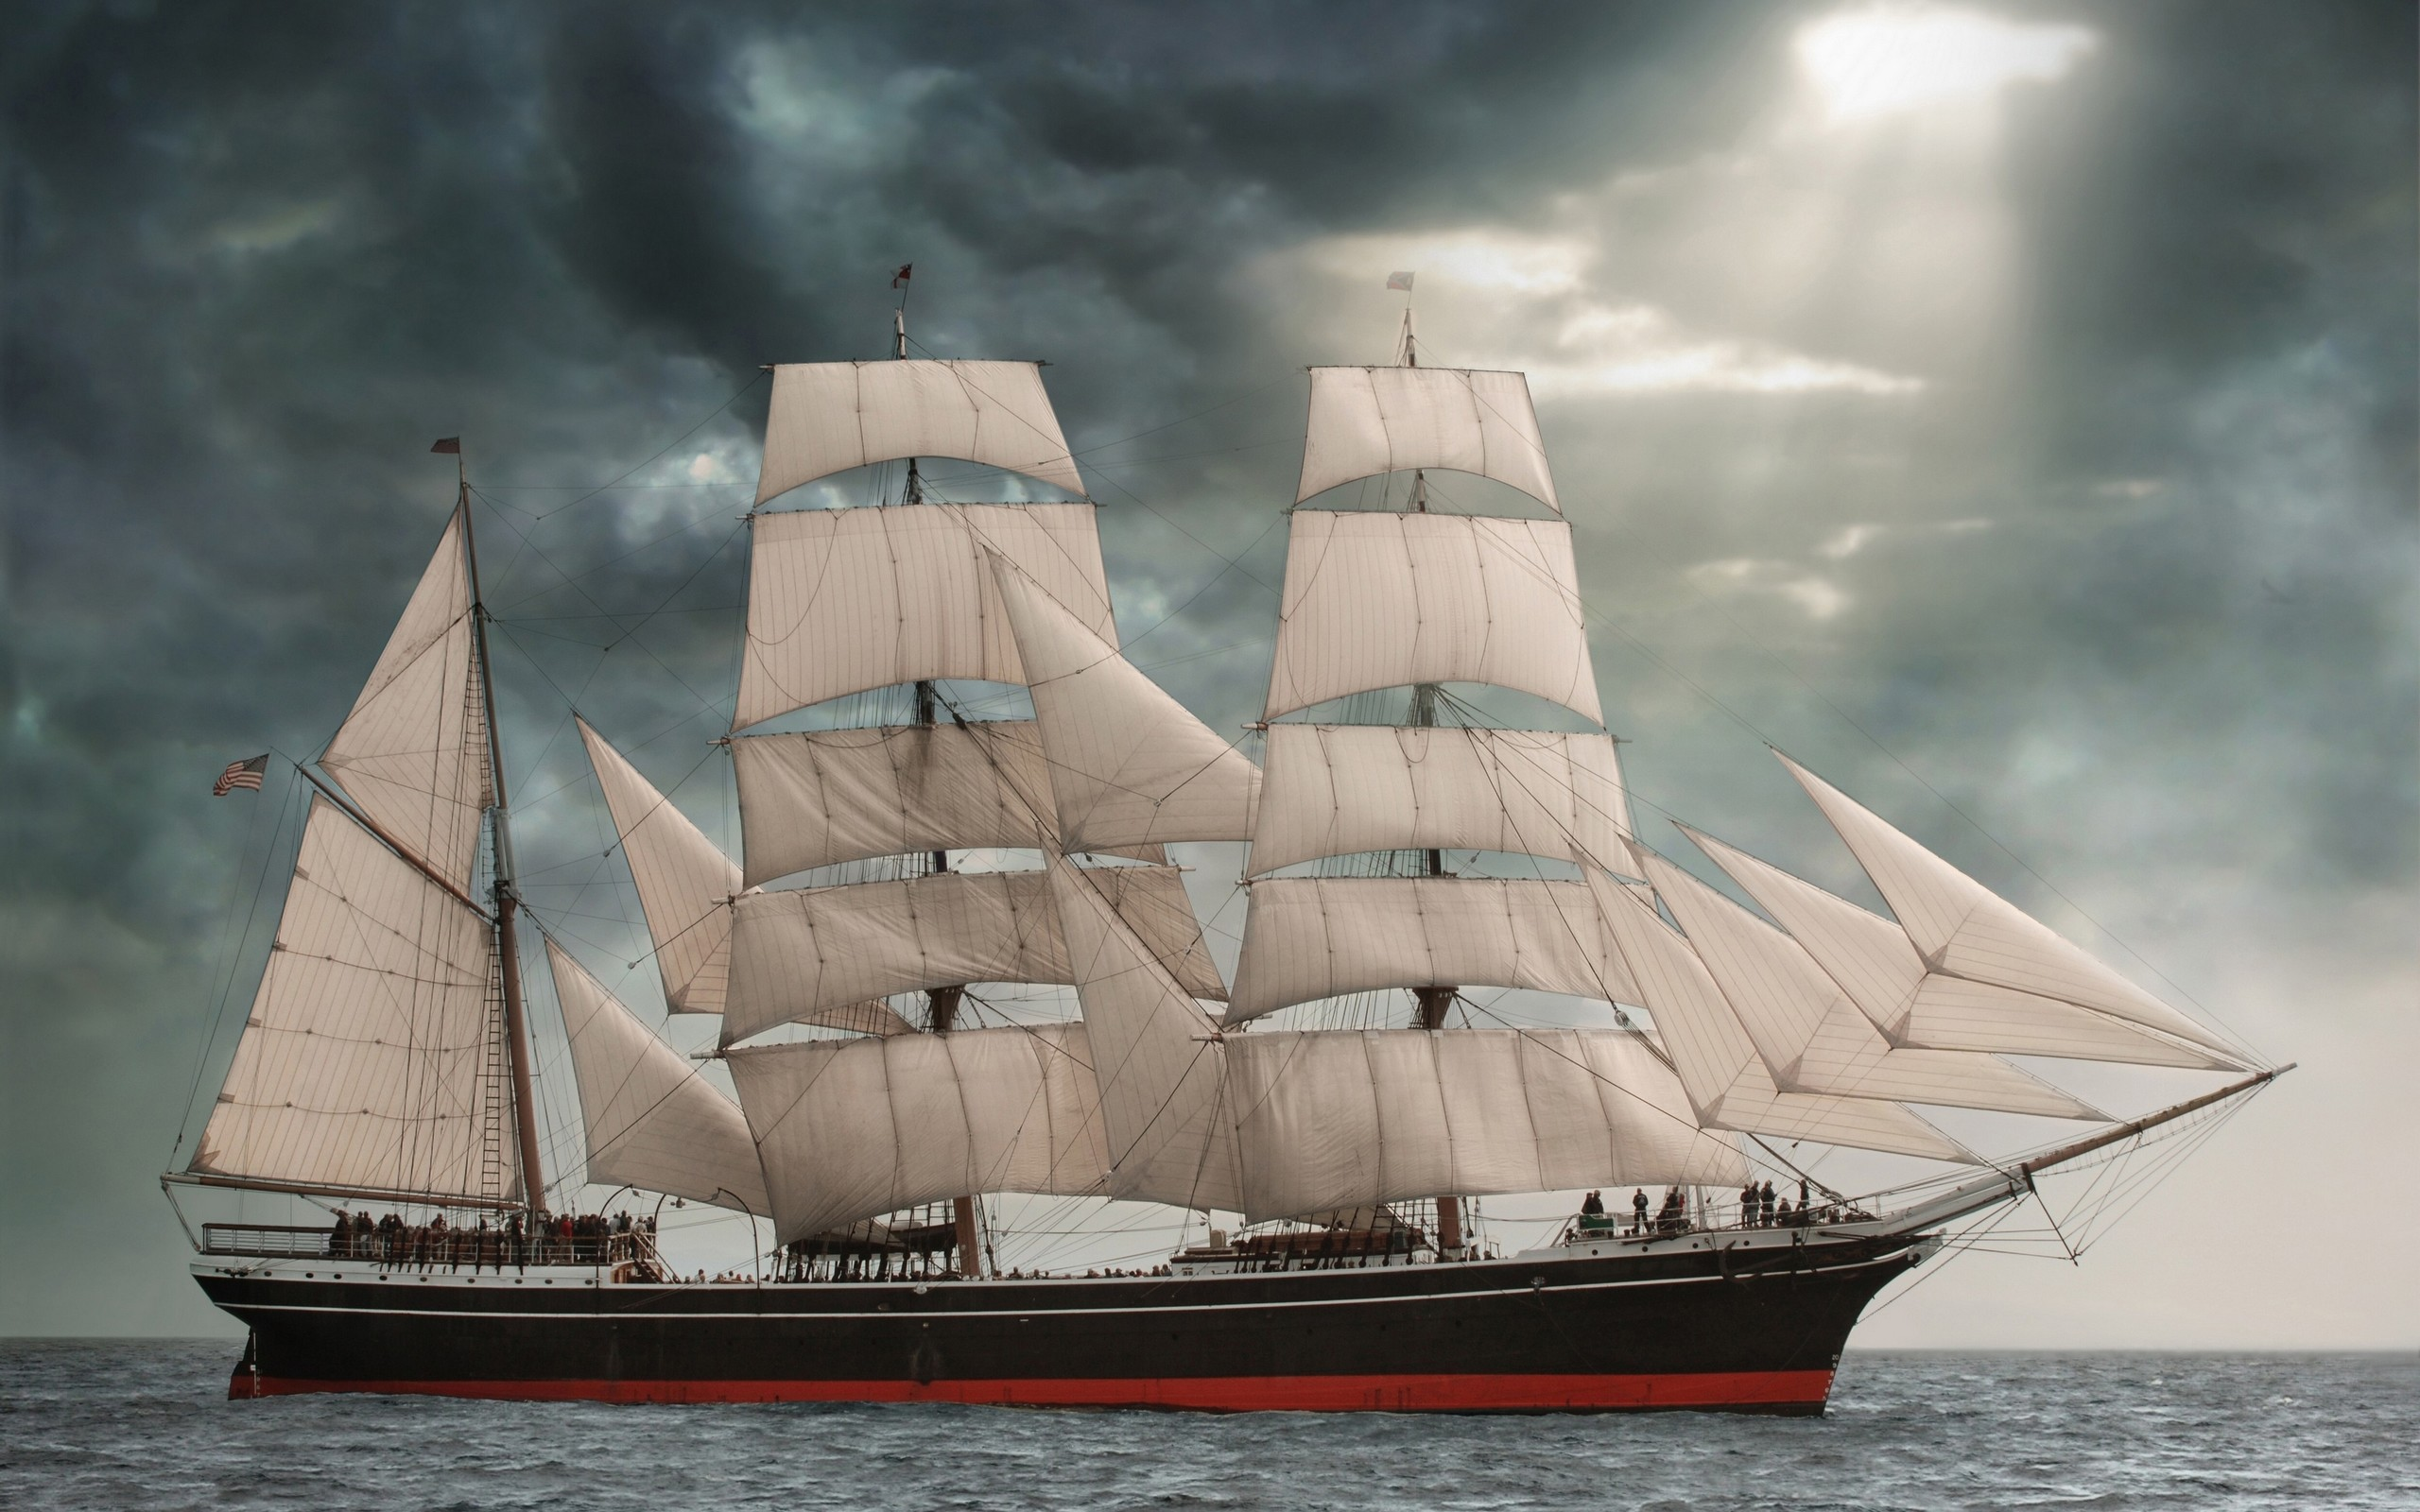 2560x1600 Sailing Ship Full HD Charming Wallpaper Free HD Wallpaper .